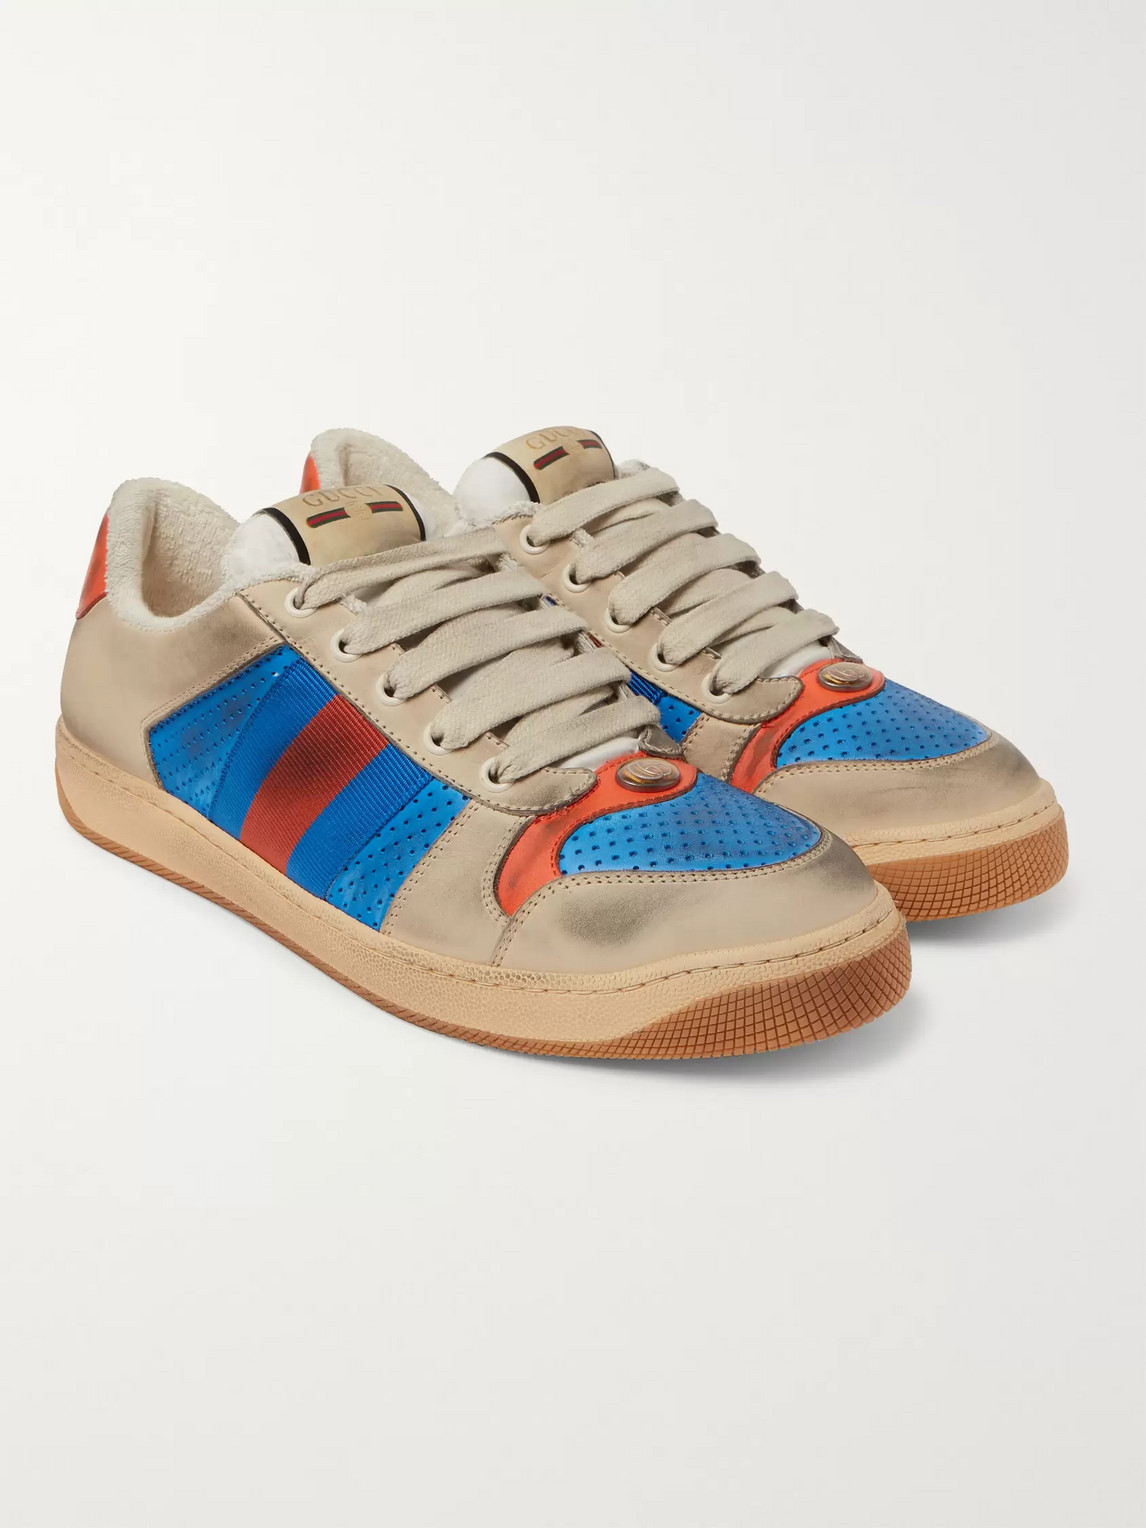 gucci - virtus distressed leather and webbing sneakers - men - blue